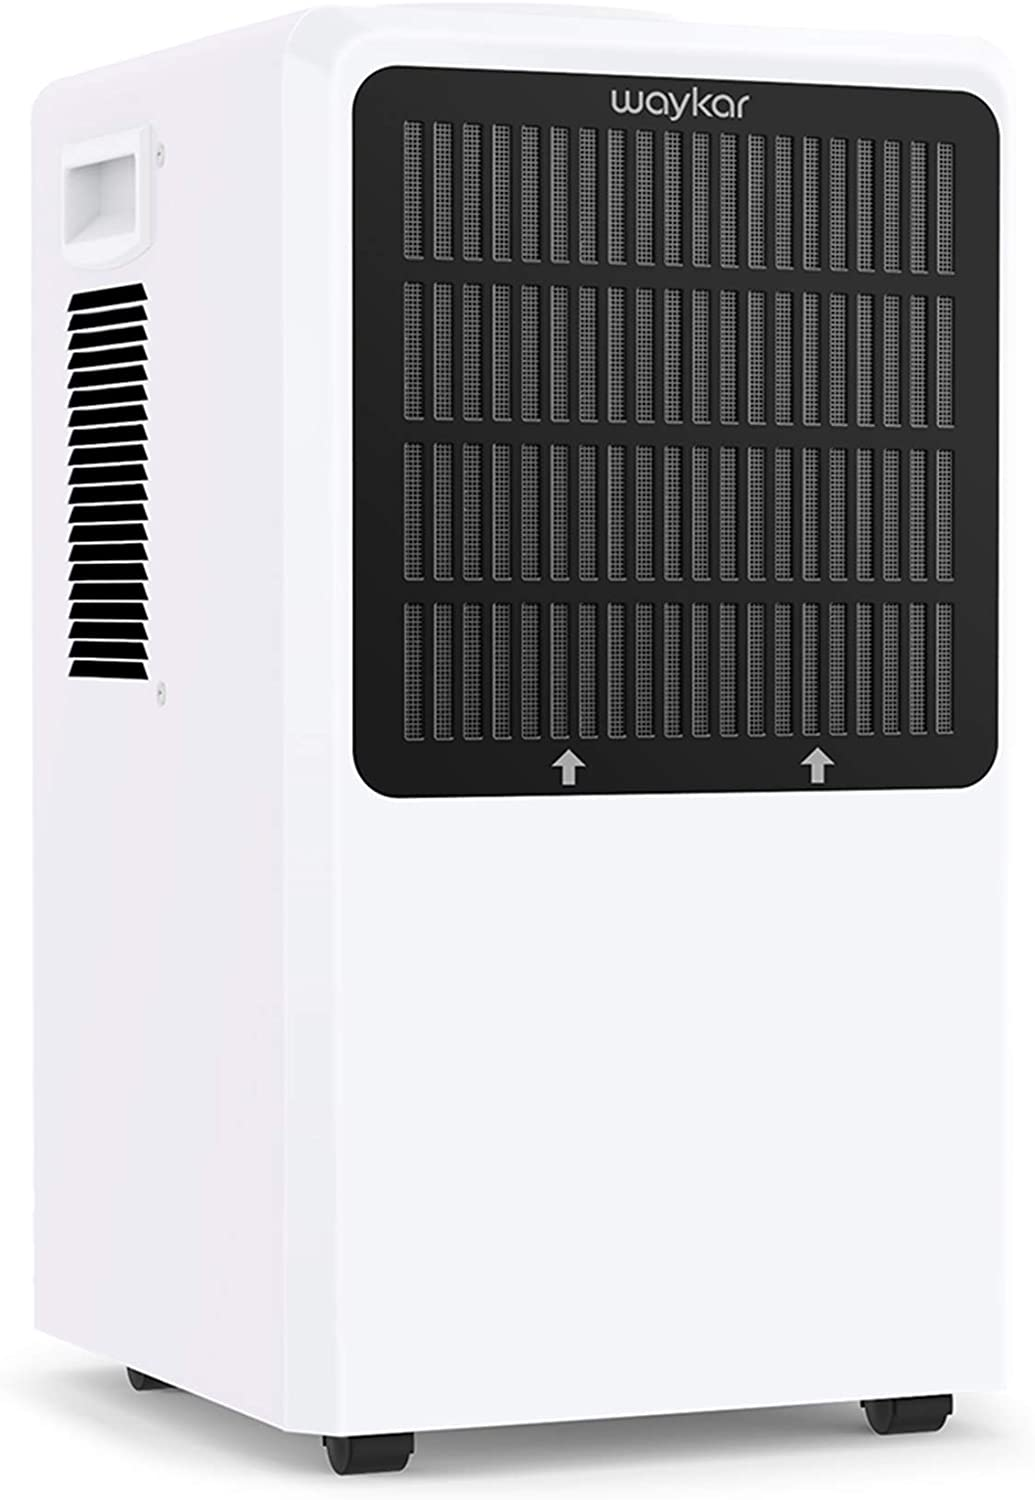 Waykar Commercial Dehumidifier 130 Pint ,with Drain Hose for Home Basements Whole house , Drying Moisture in Large Space Up to 6,000 sq. ft.